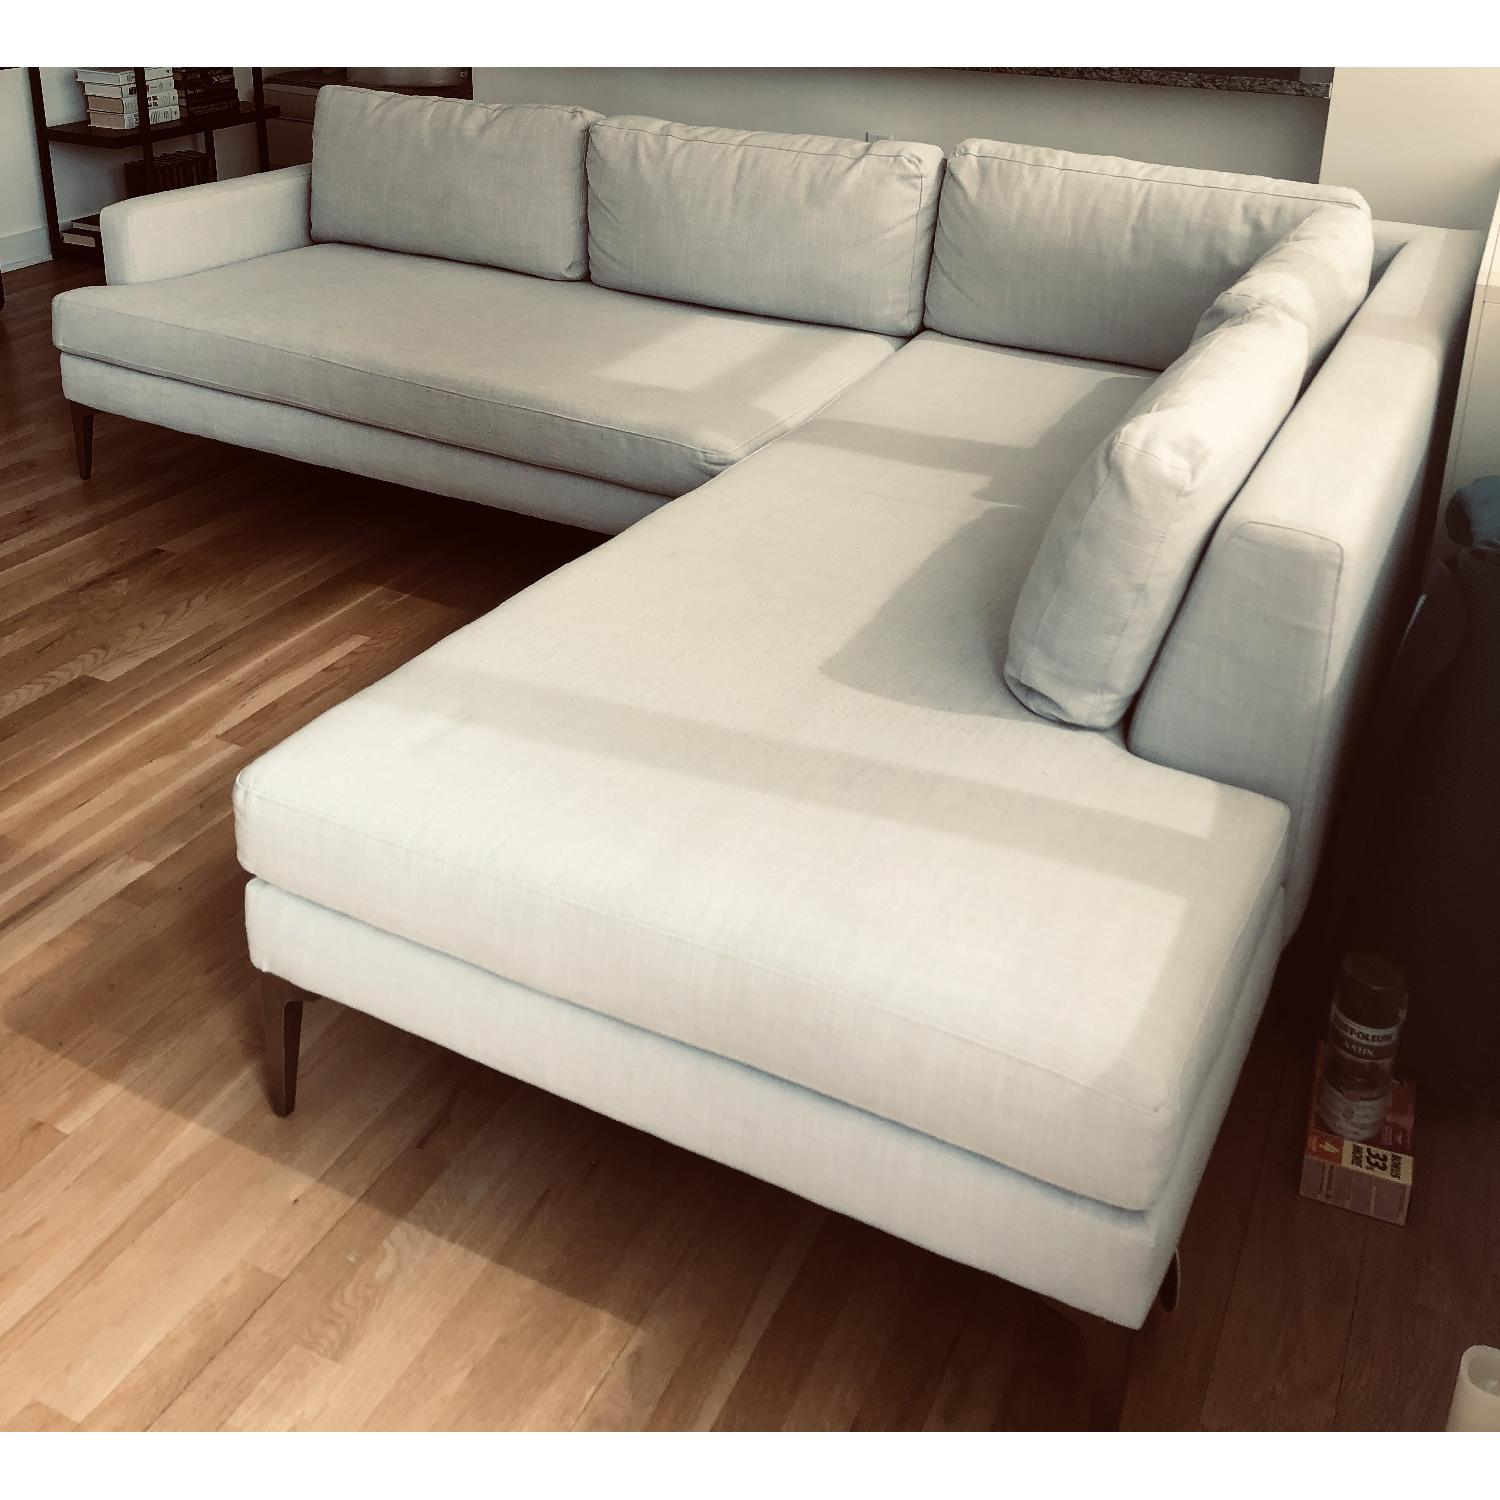 Wondrous West Elm Andes Chaise Sectional Sofa Aptdeco Alphanode Cool Chair Designs And Ideas Alphanodeonline